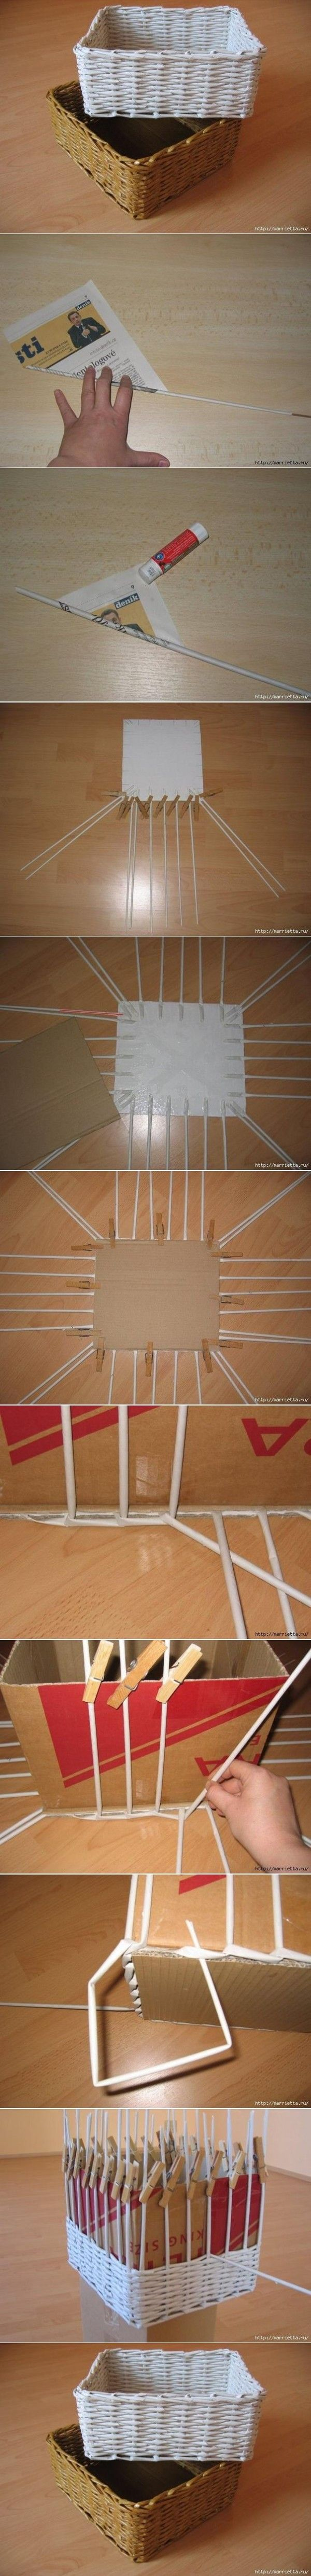 Really good way to weave a basket.